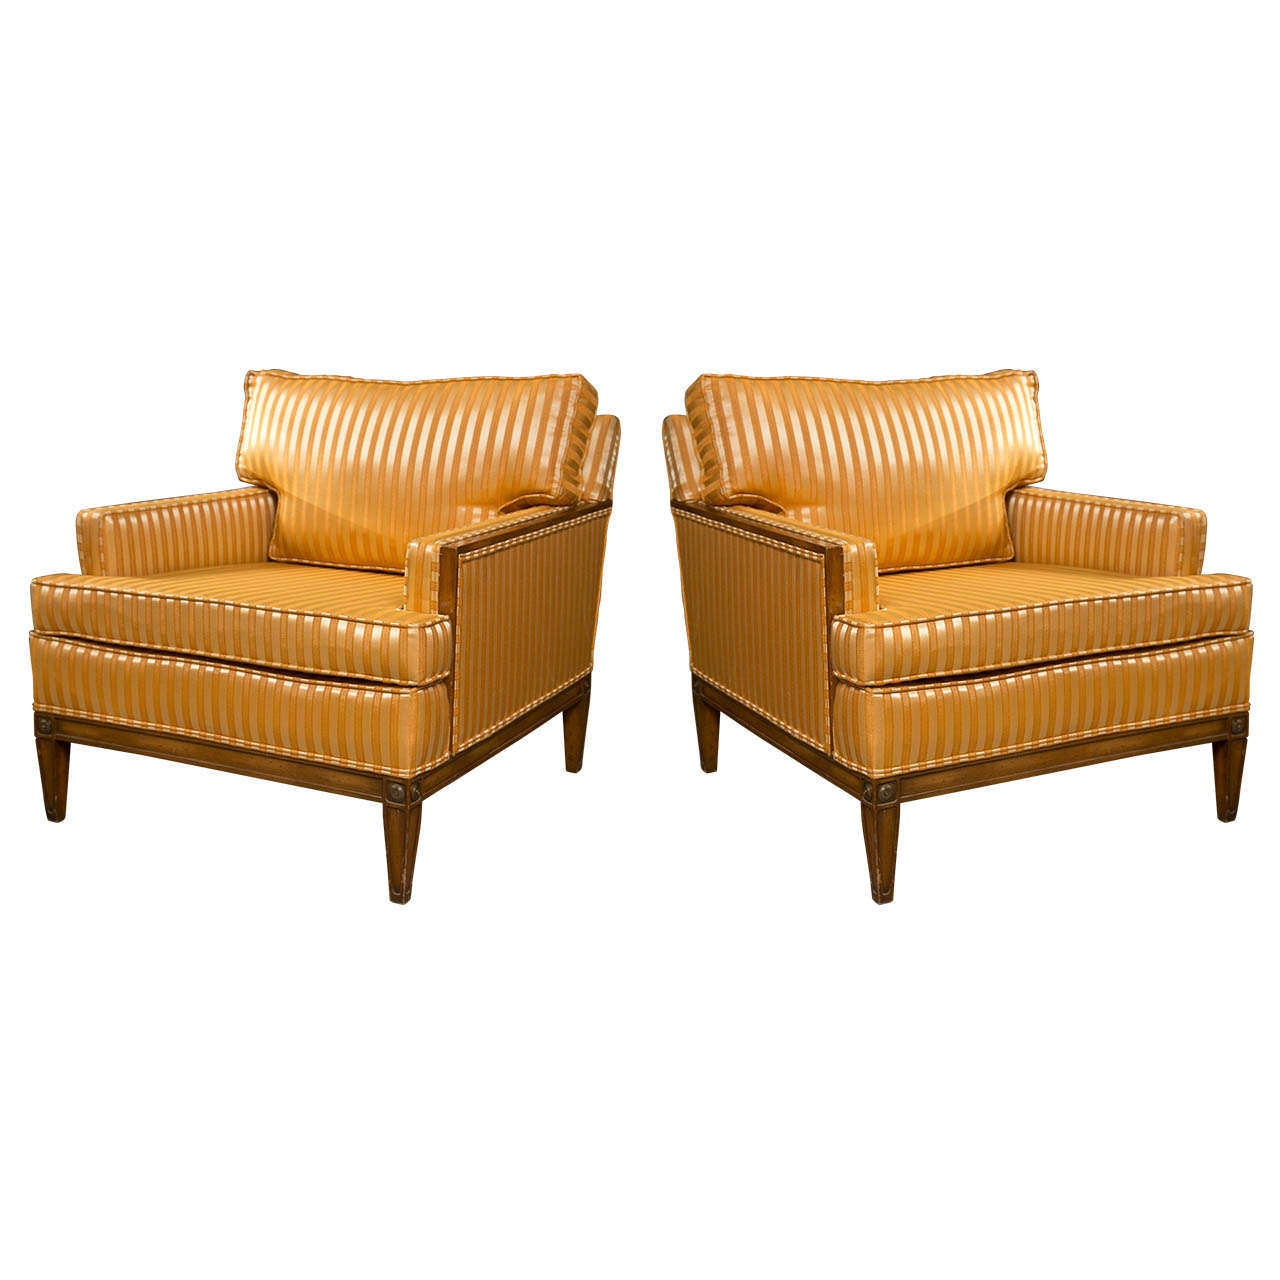 Pair Of Art Deco Style Club Chairs At 1stdibs